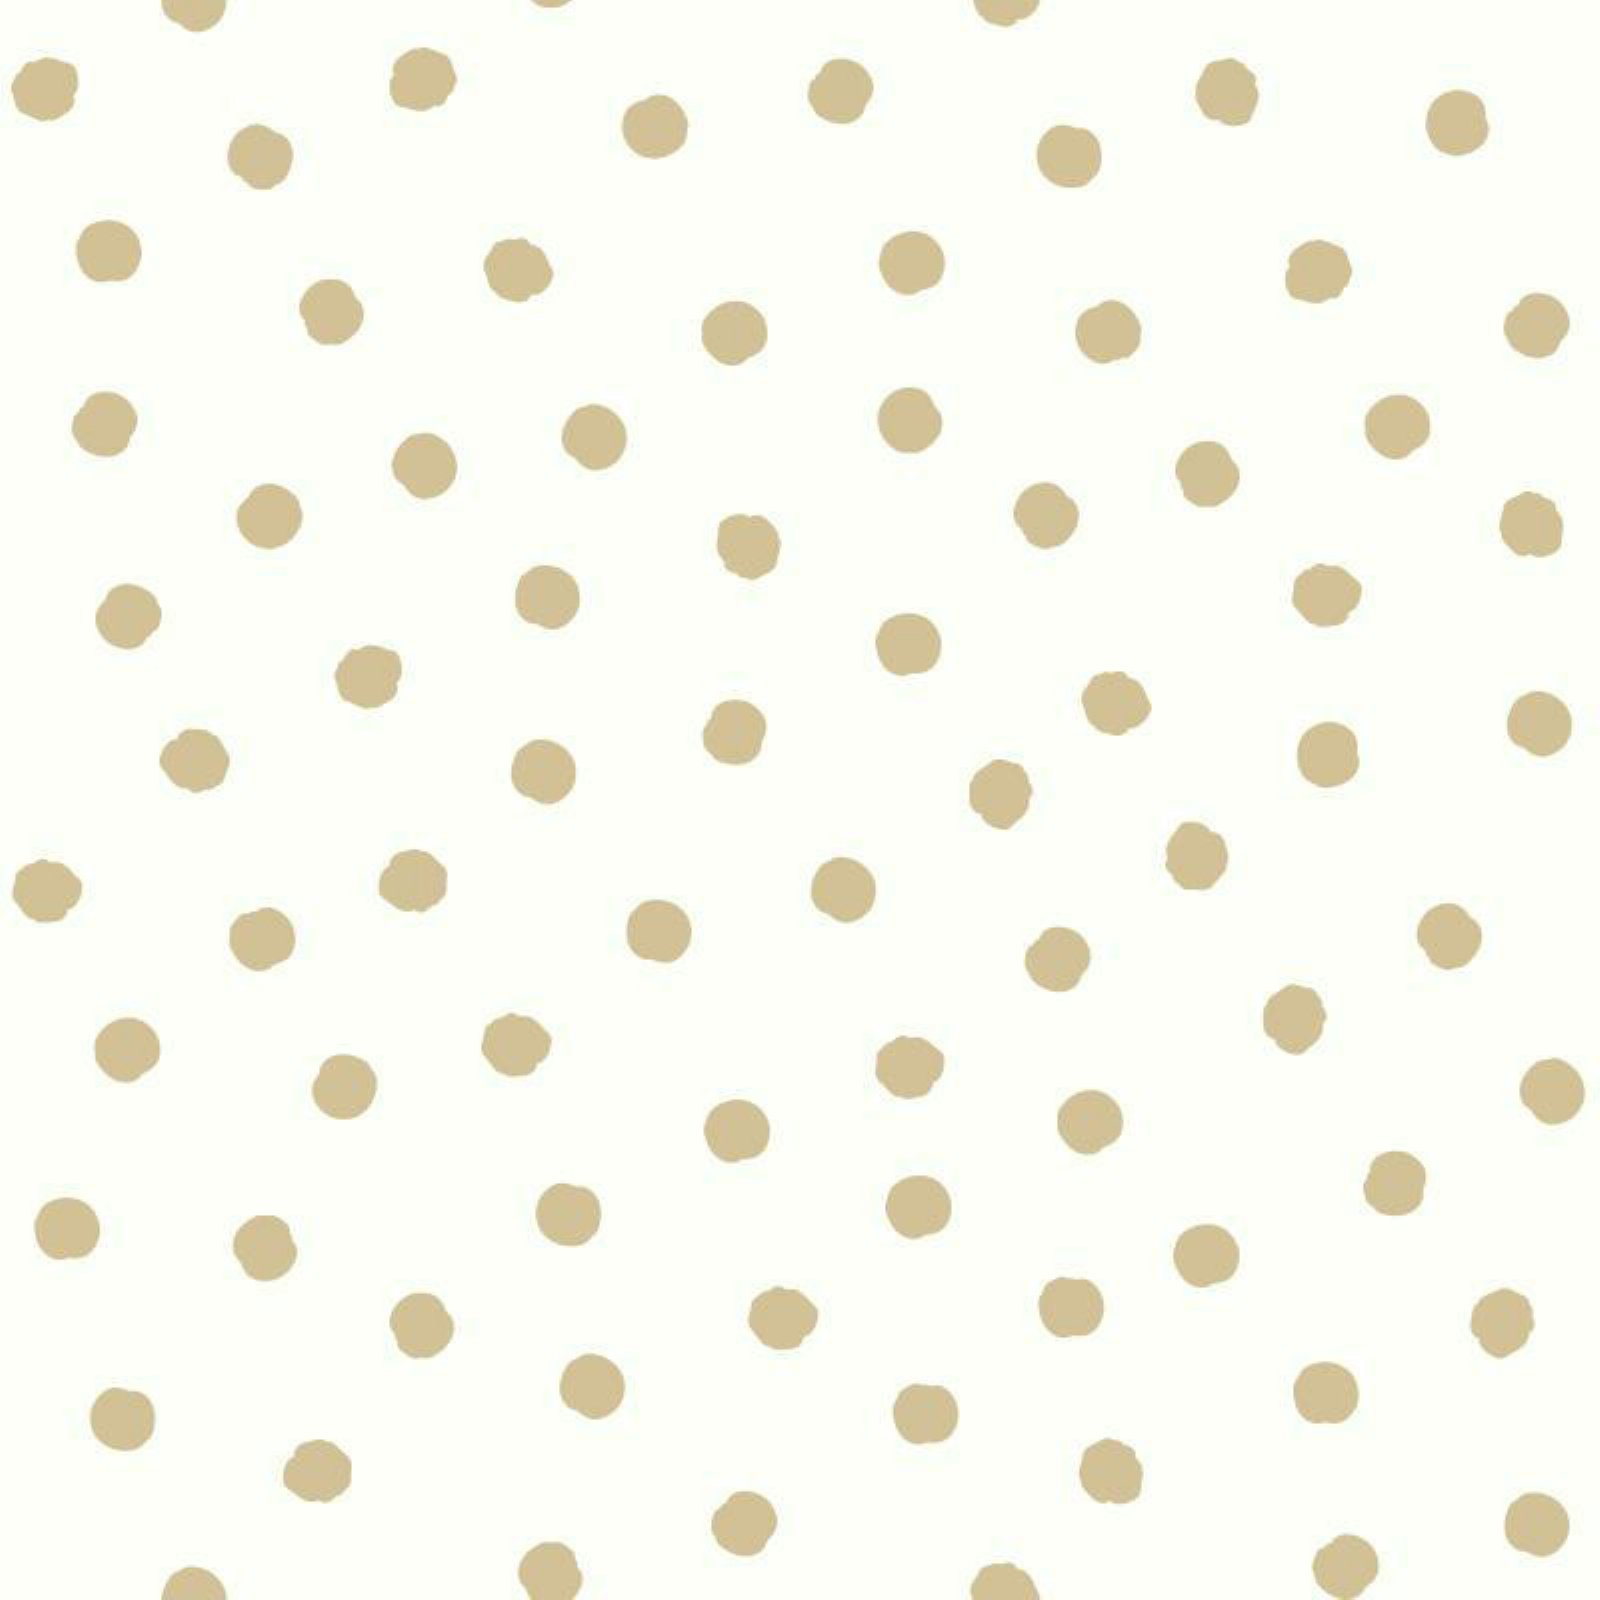 RoomMates Gold Dot Peel & Stick Wallpaper